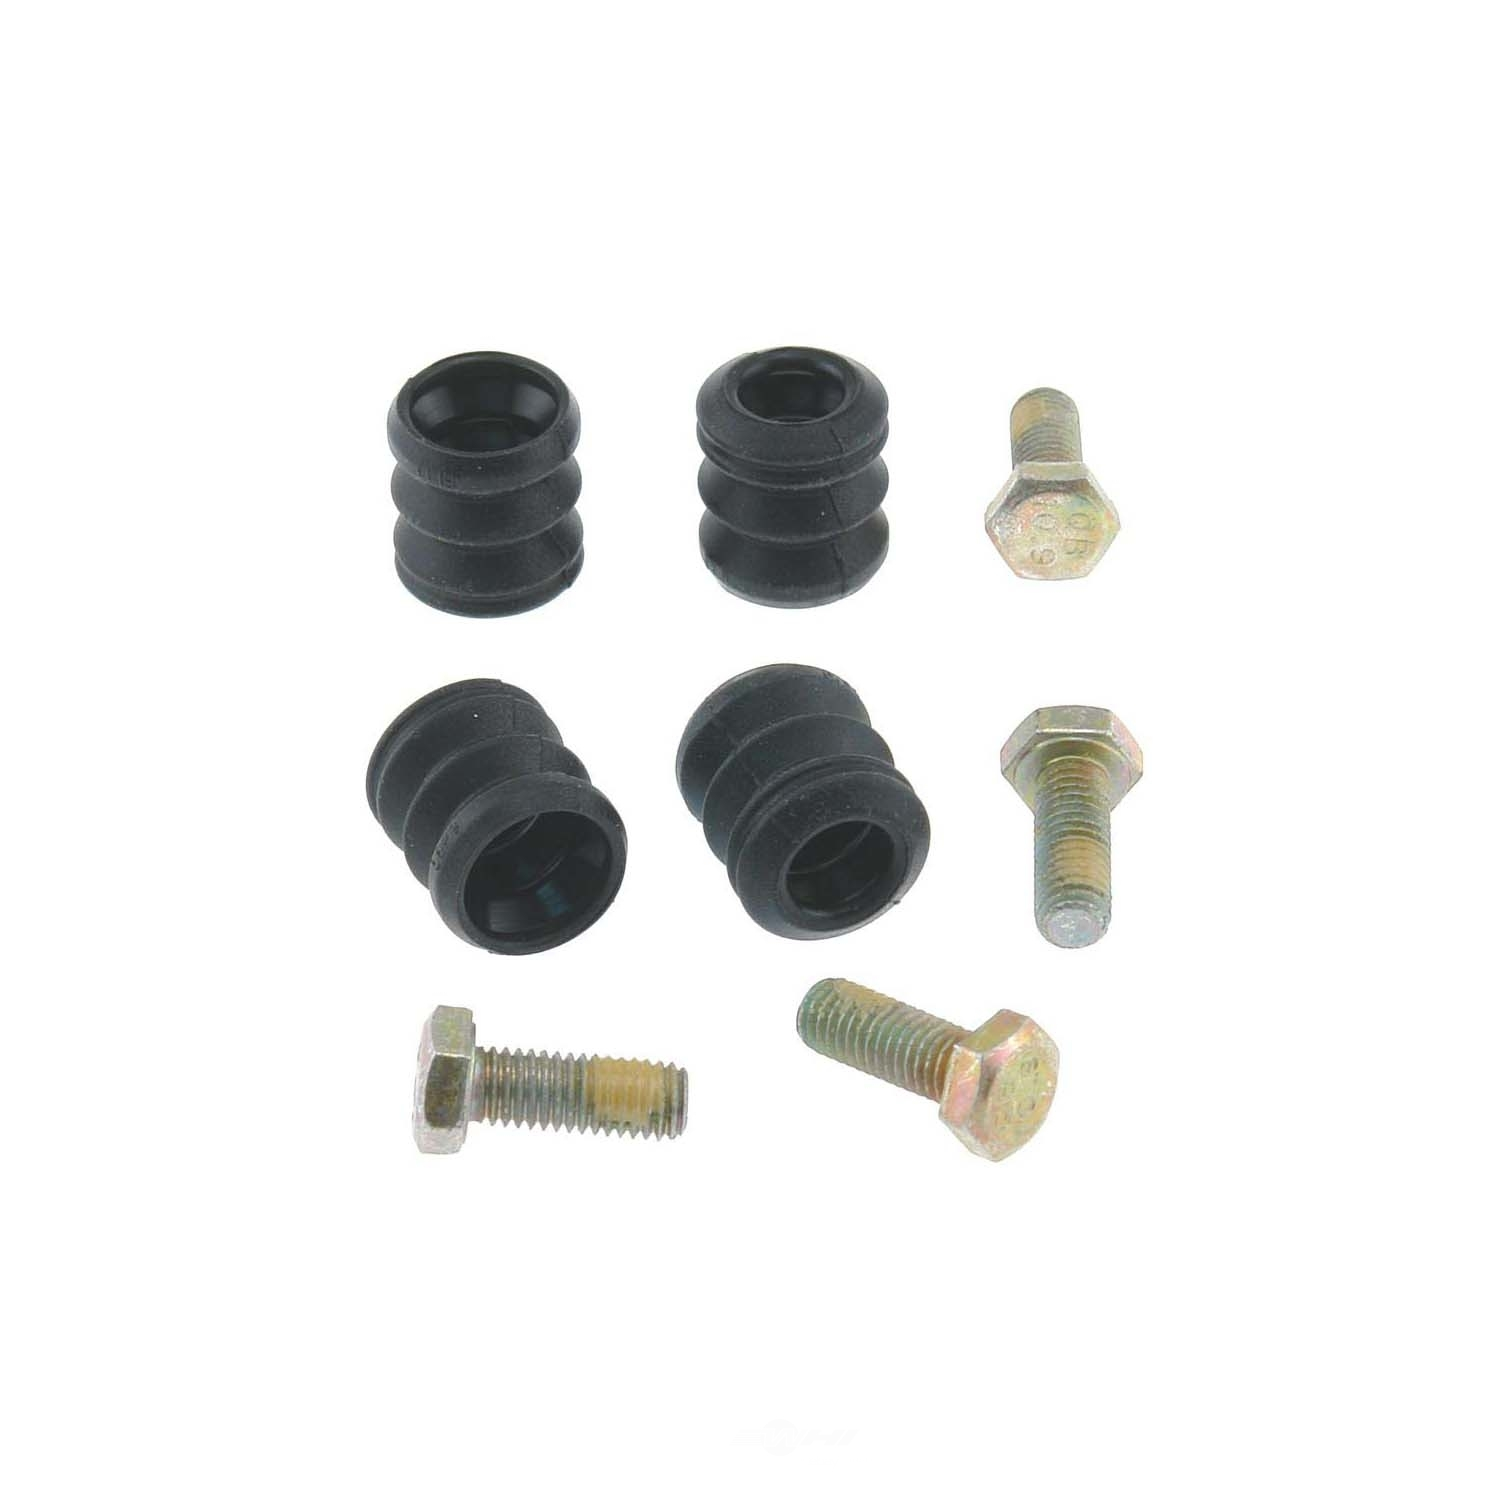 CARLSON QUALITY BRAKE PARTS - Disc Brake Hardware Kit - CRL 13119